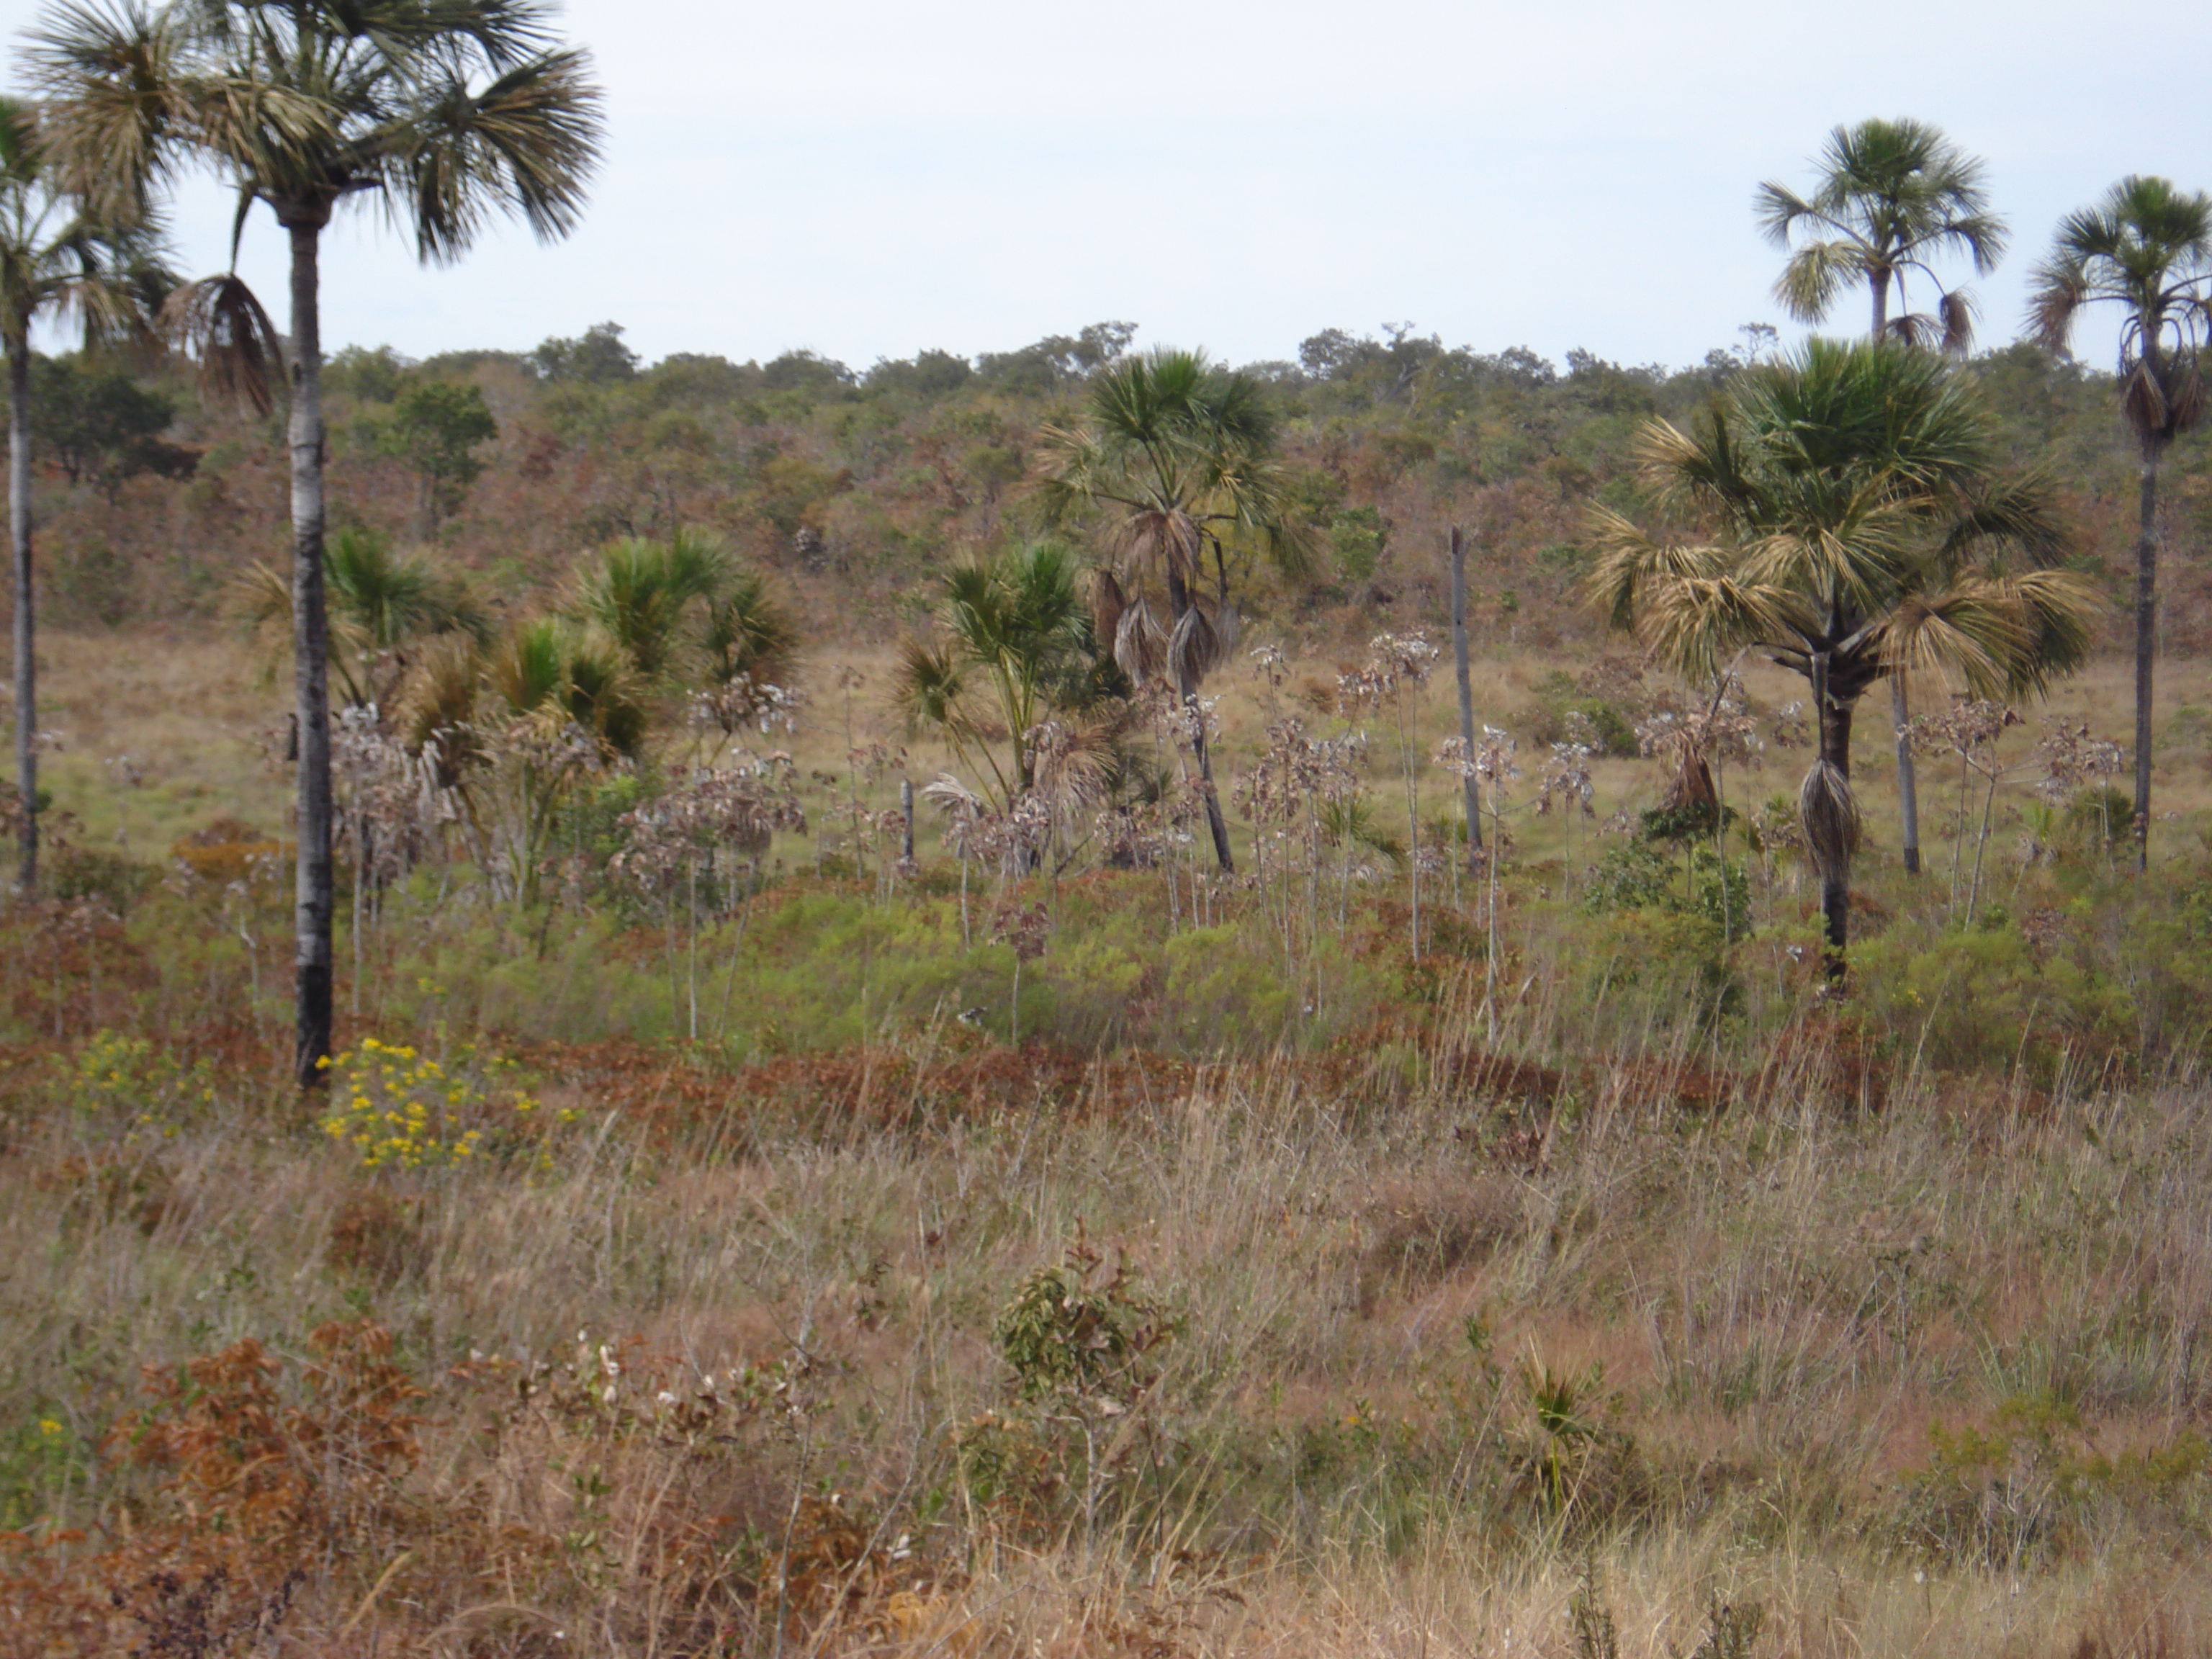 Changes in habitat type along a Cerrado landscape. In this particular view, the sparse grassland in the front is replaced by a palm swamp in the middle, which then is replaced by a more closed savanna vegetation with many small trees in the background (photo credit: P.K. Maruyama).